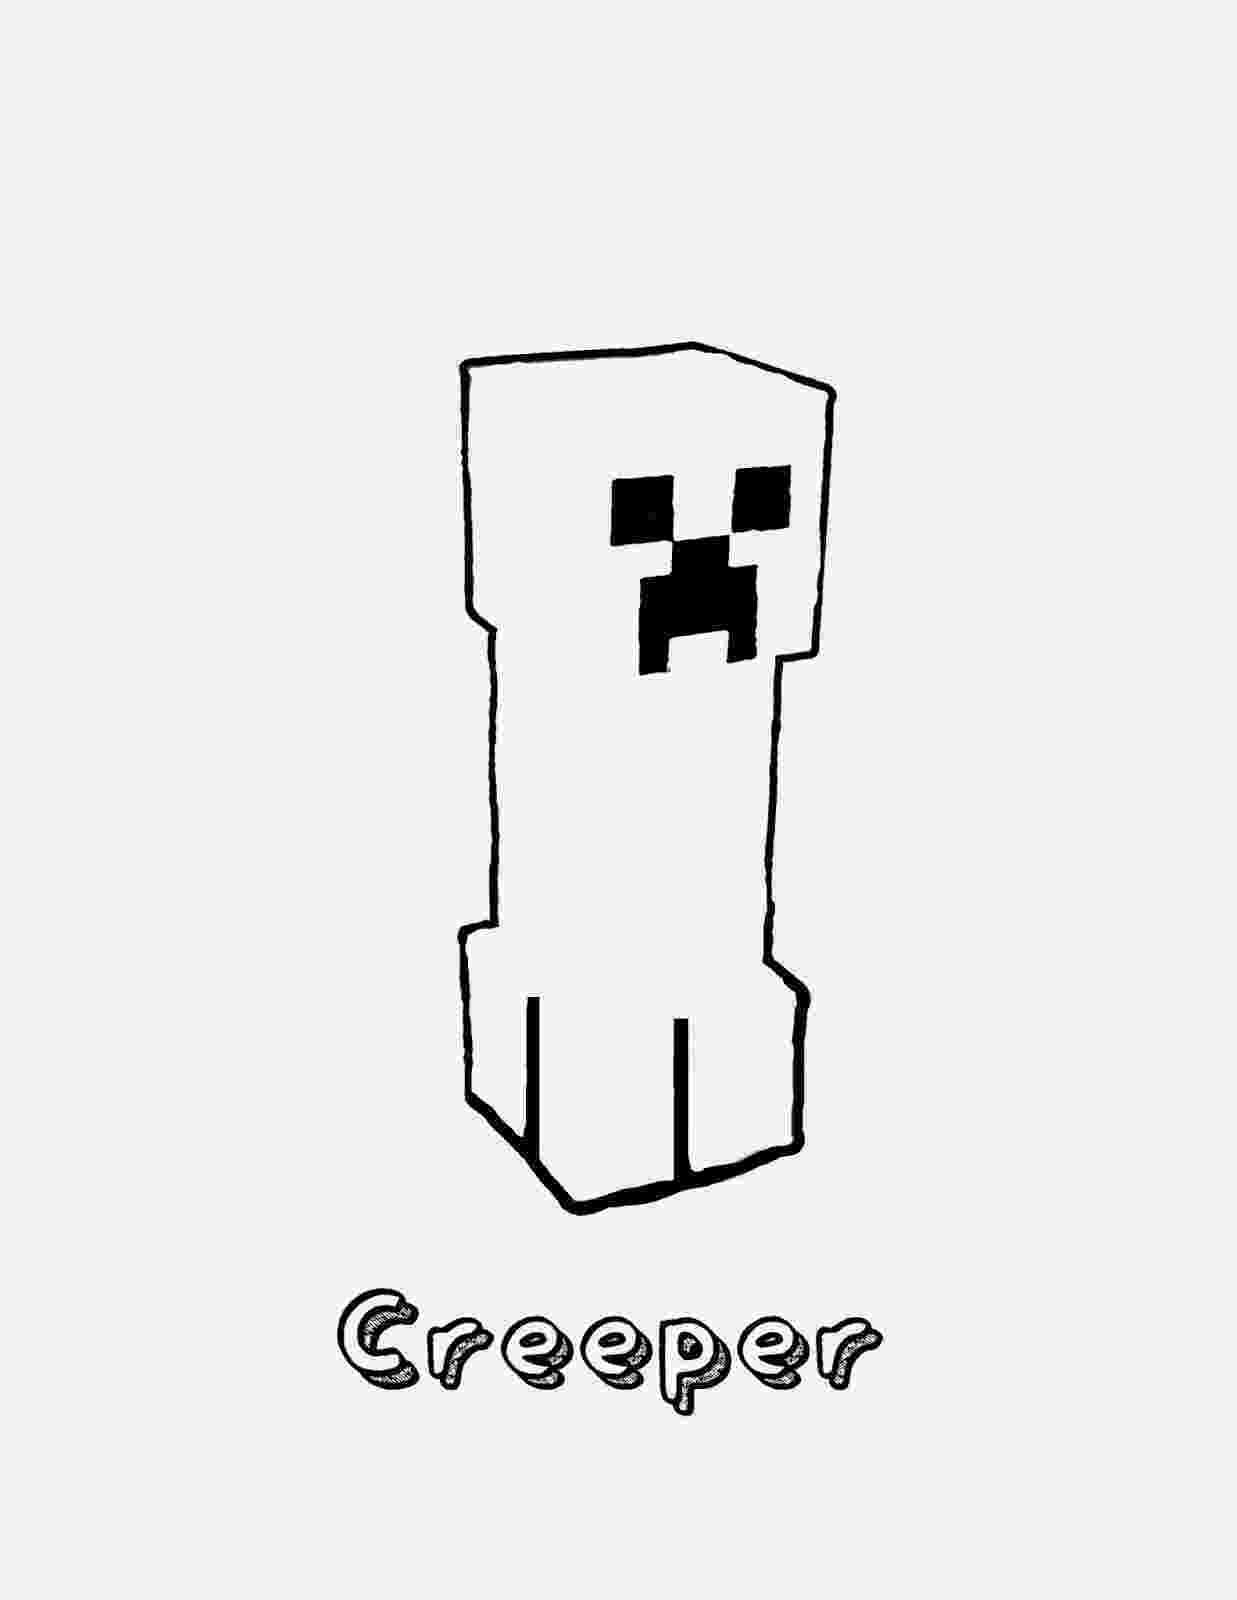 minecraft creeper pictures to color printable minecraft creeper coloring pages minecraft to color creeper pictures minecraft